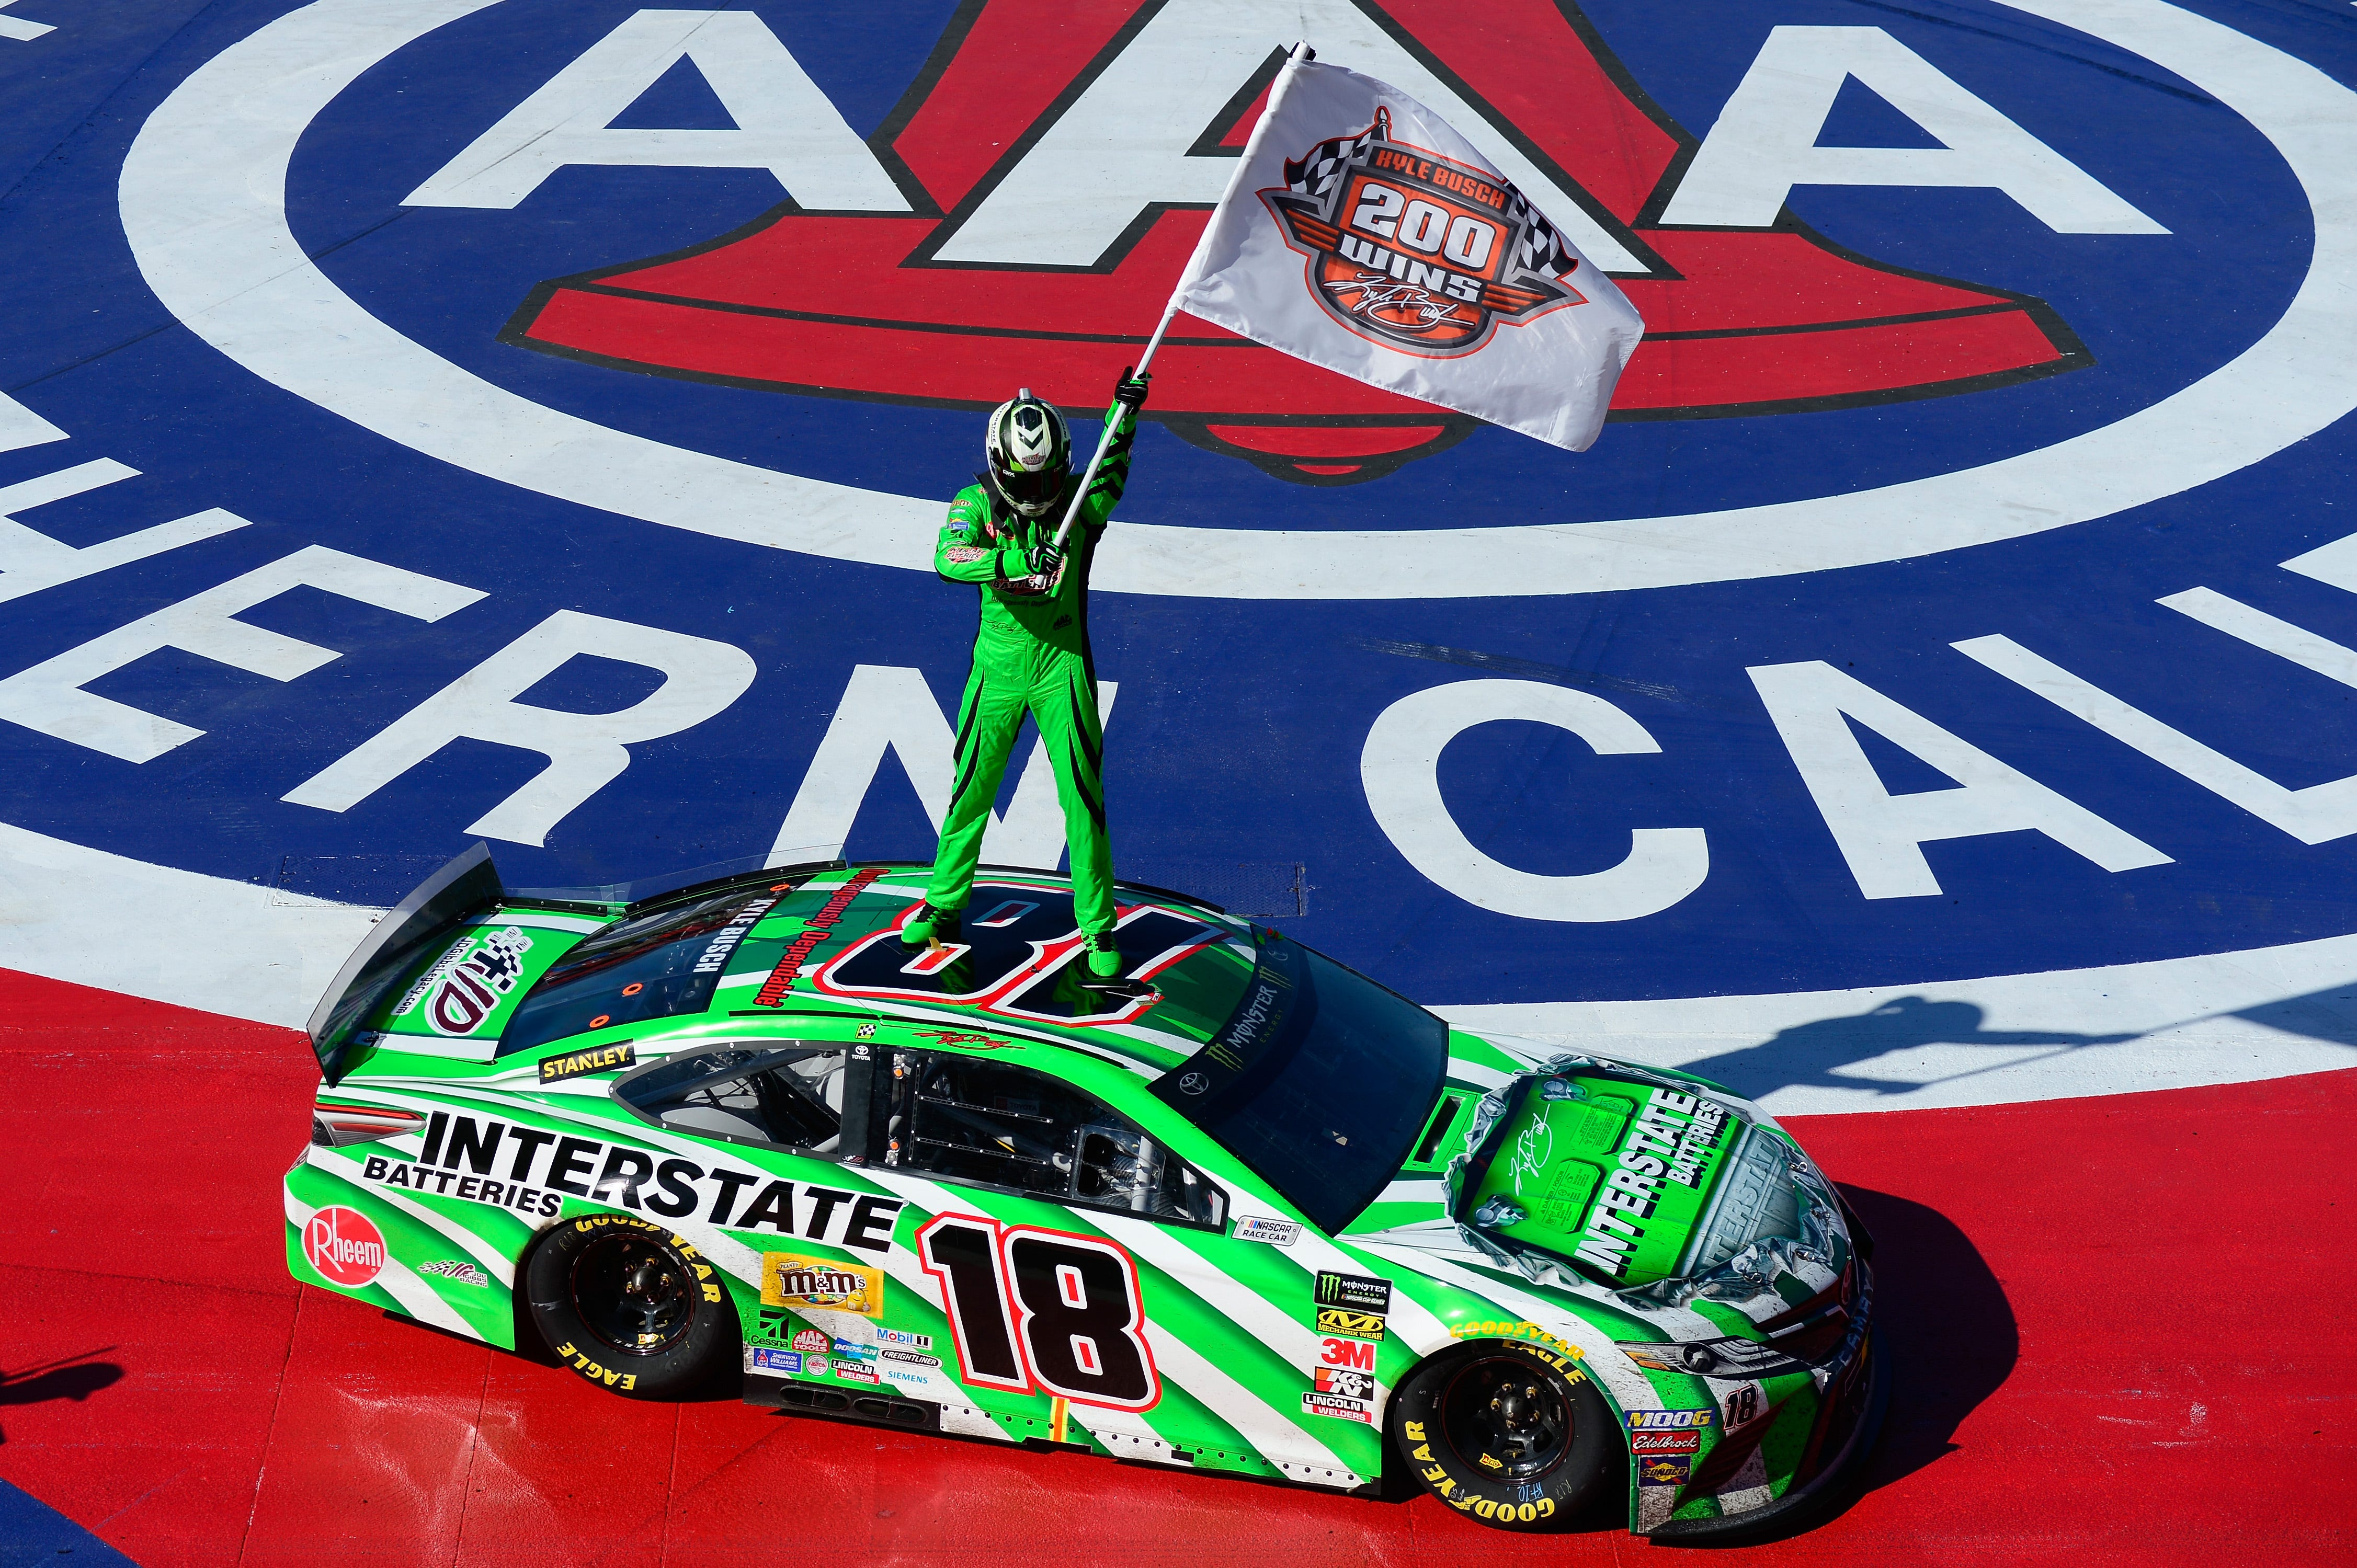 Kyle Busch scores milestone 200th NASCAR national series win with strong run in Auto Club 400